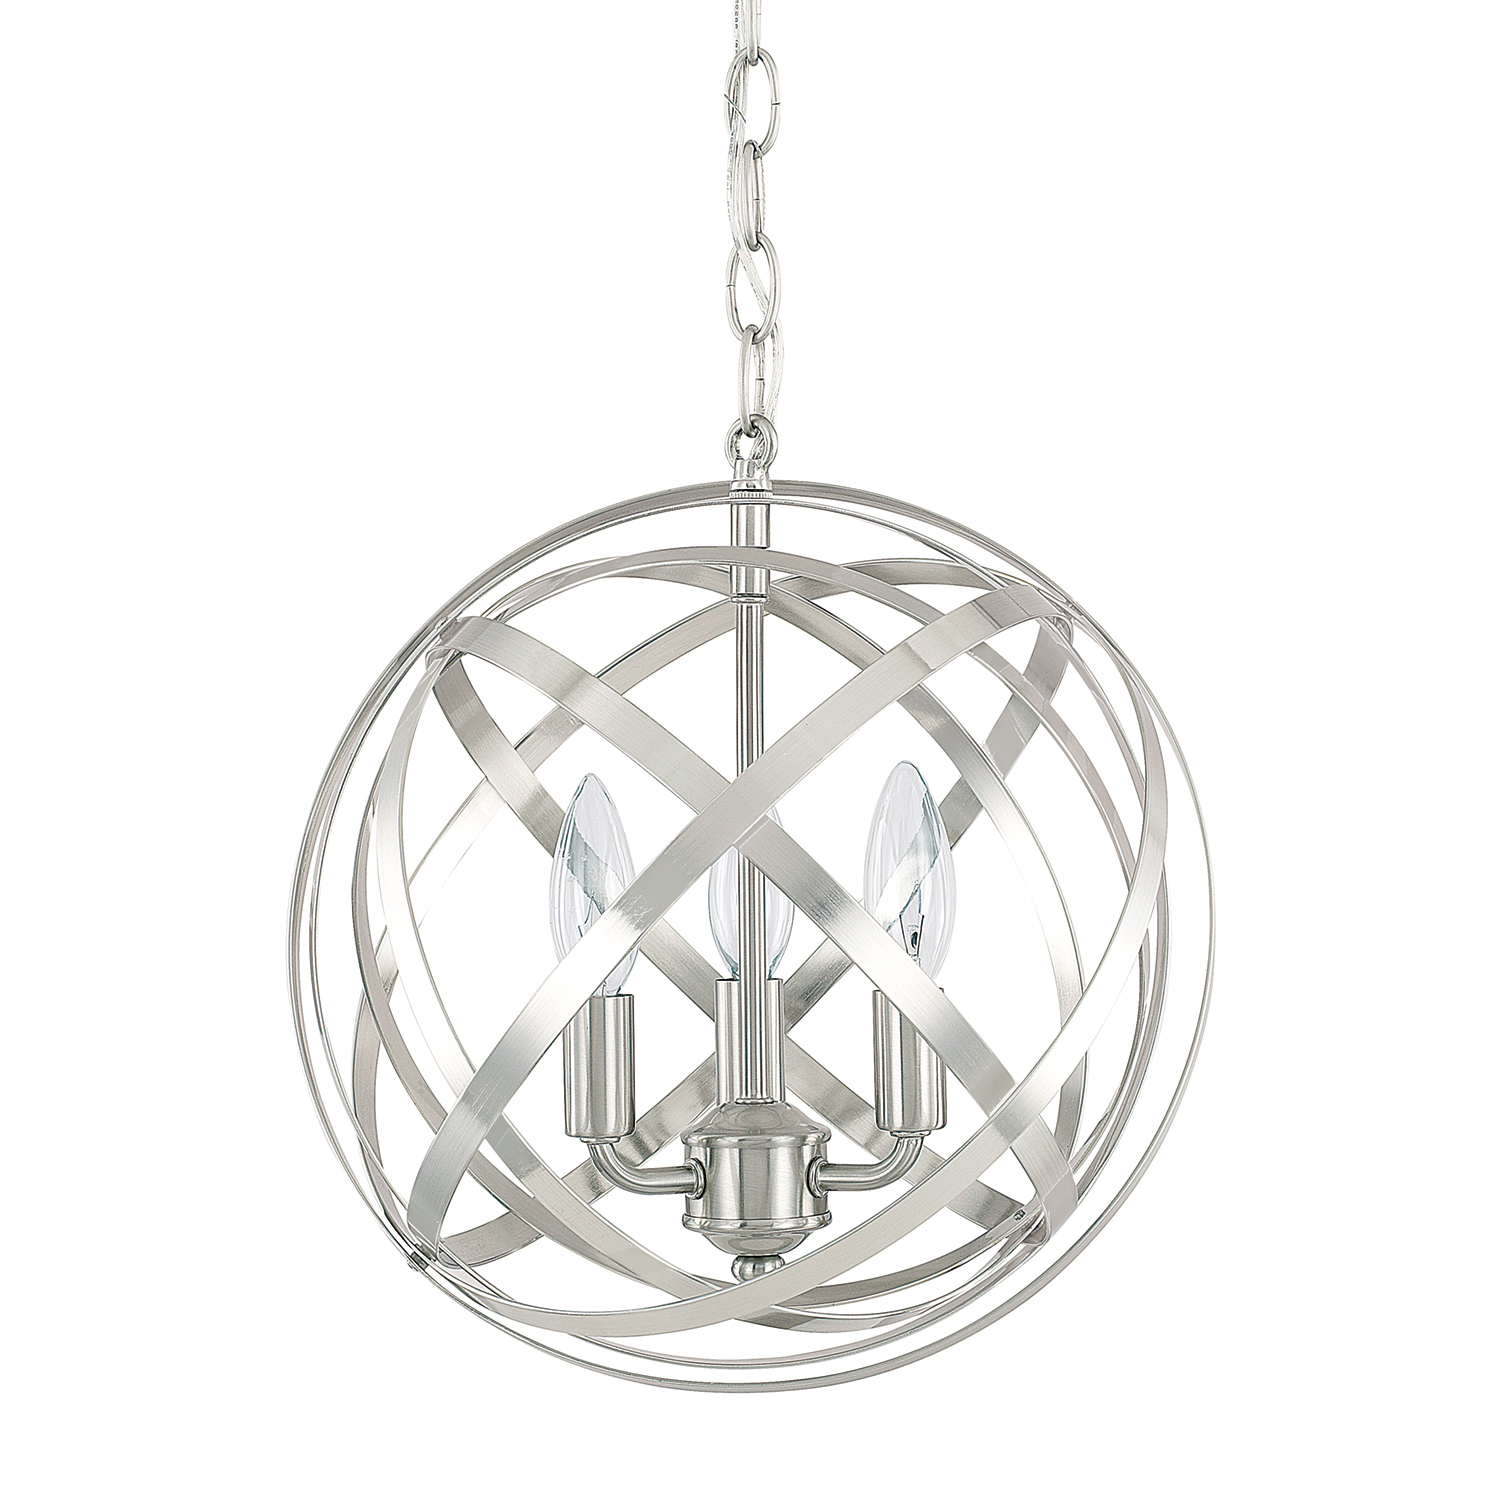 light fixture drawing at getdrawings com free for personal use